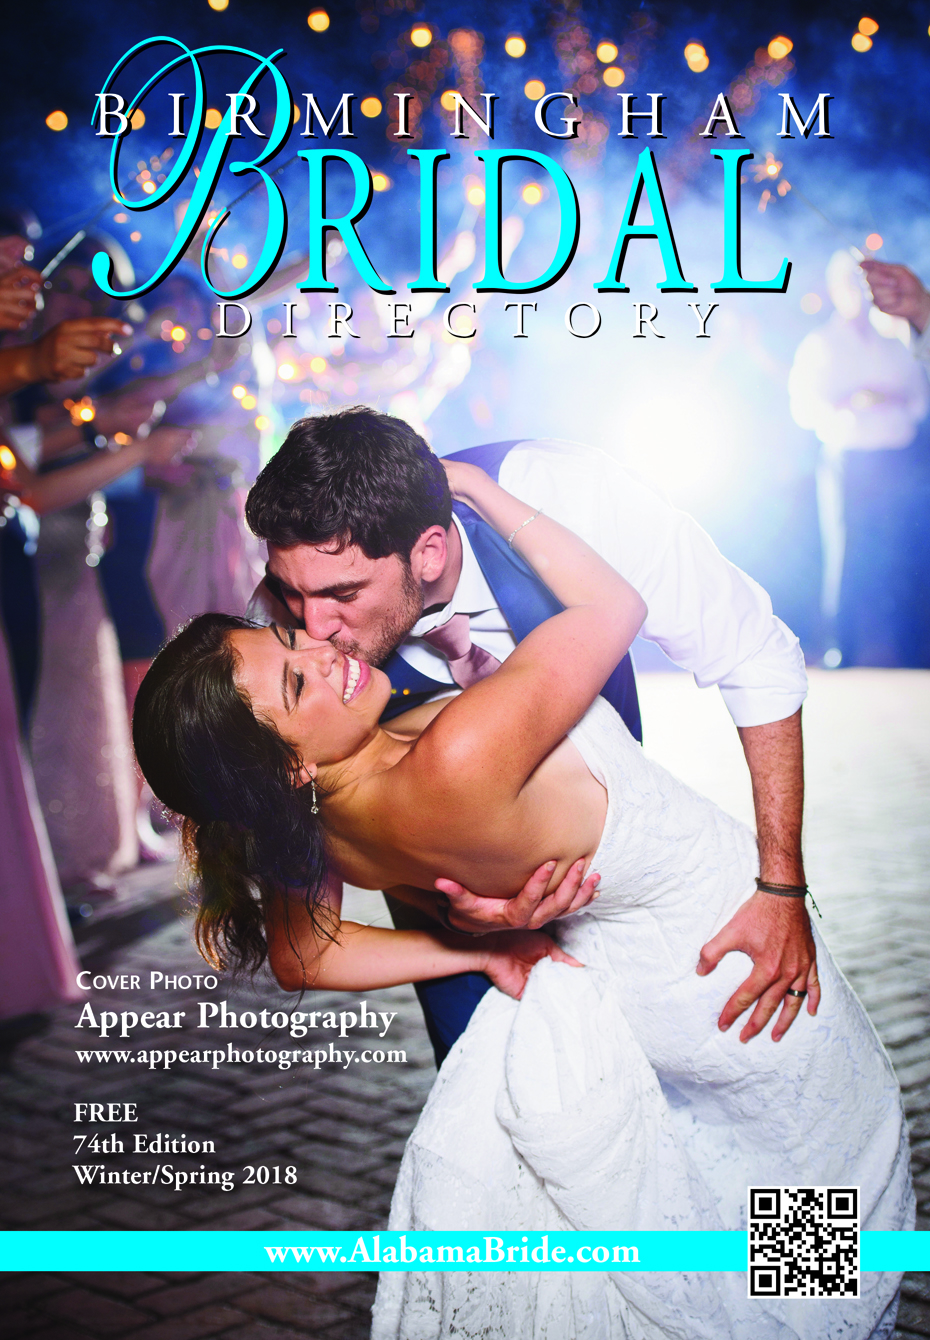 Alabama Bride Area Books Birmingham 2018